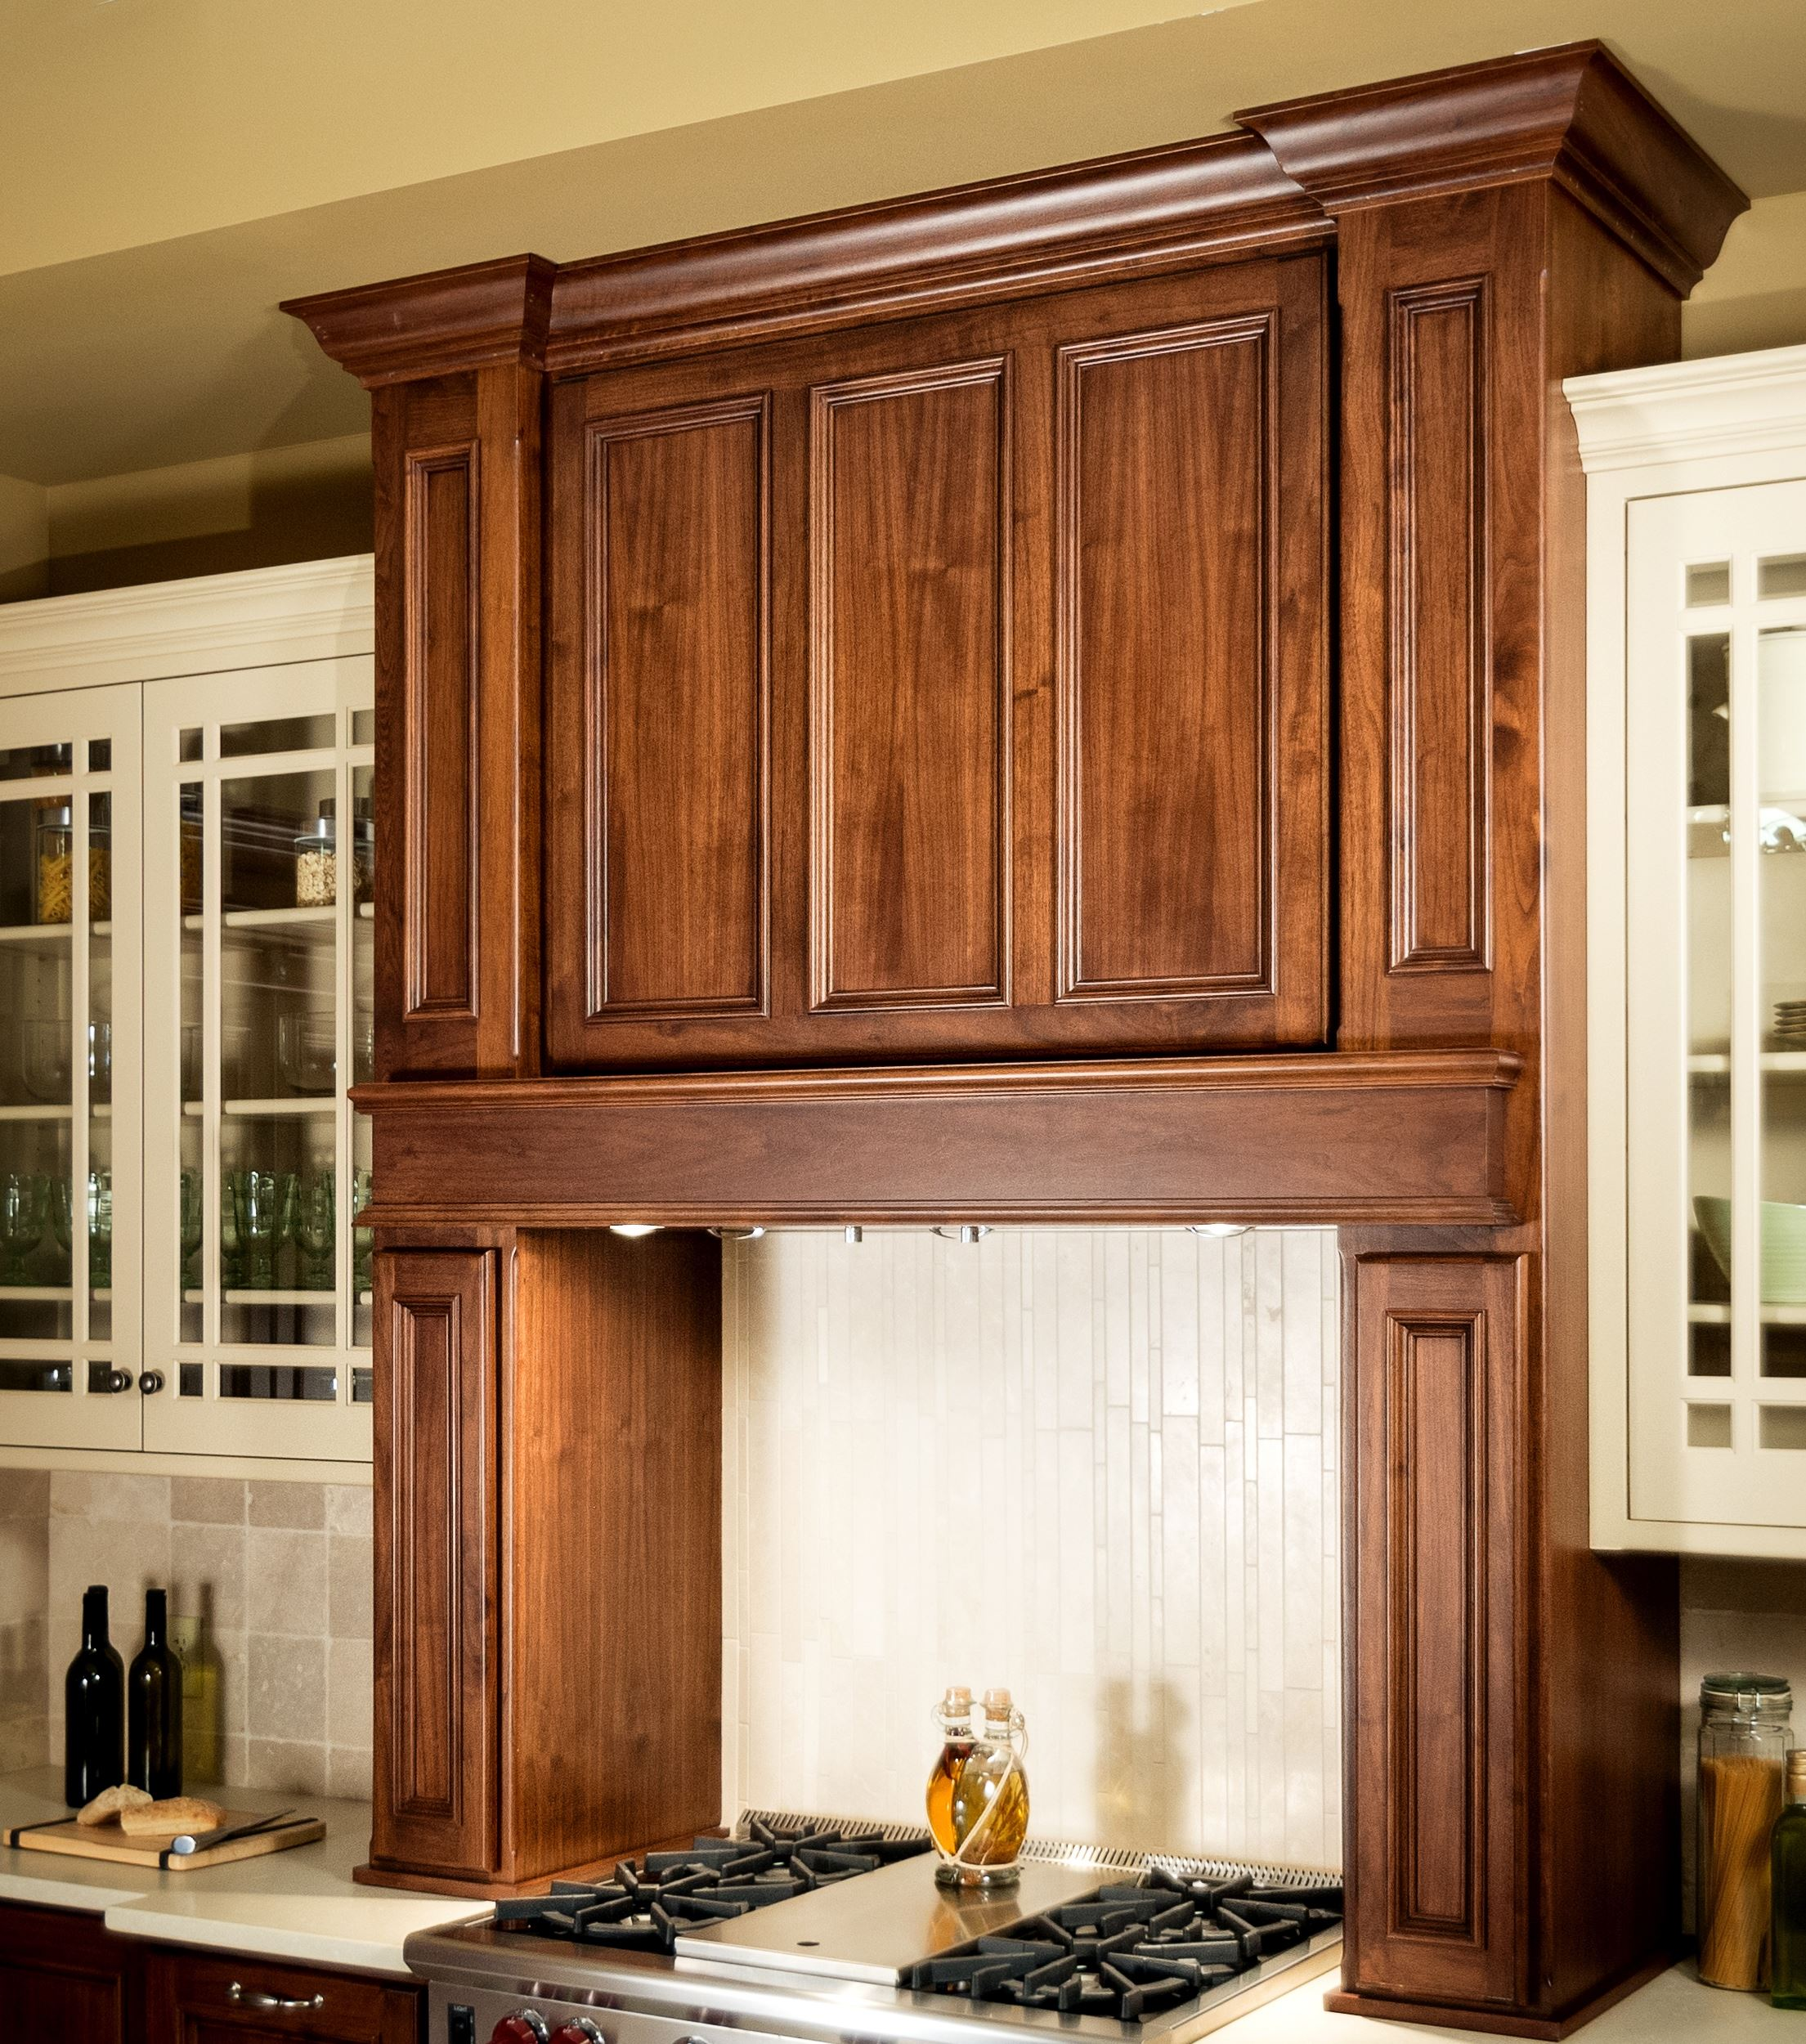 Wooden range hoods go to image page 28 cabinet range - Kitchen hood under cabinet ...